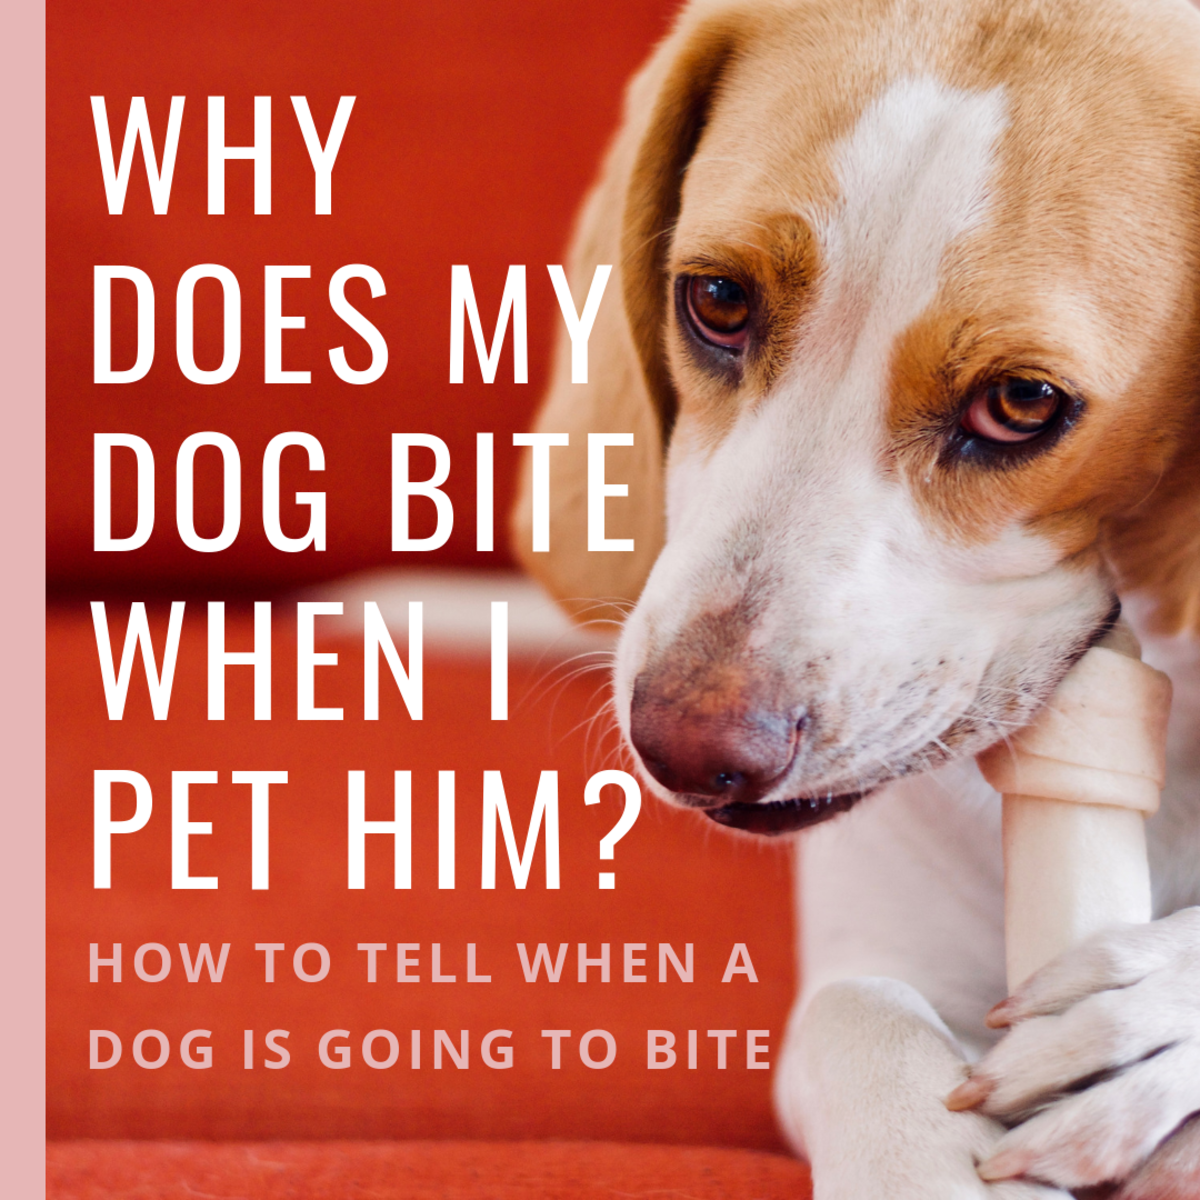 Learn why dogs bite, how to approach them, and the subtle signs that tell you a dog is ready to bite.